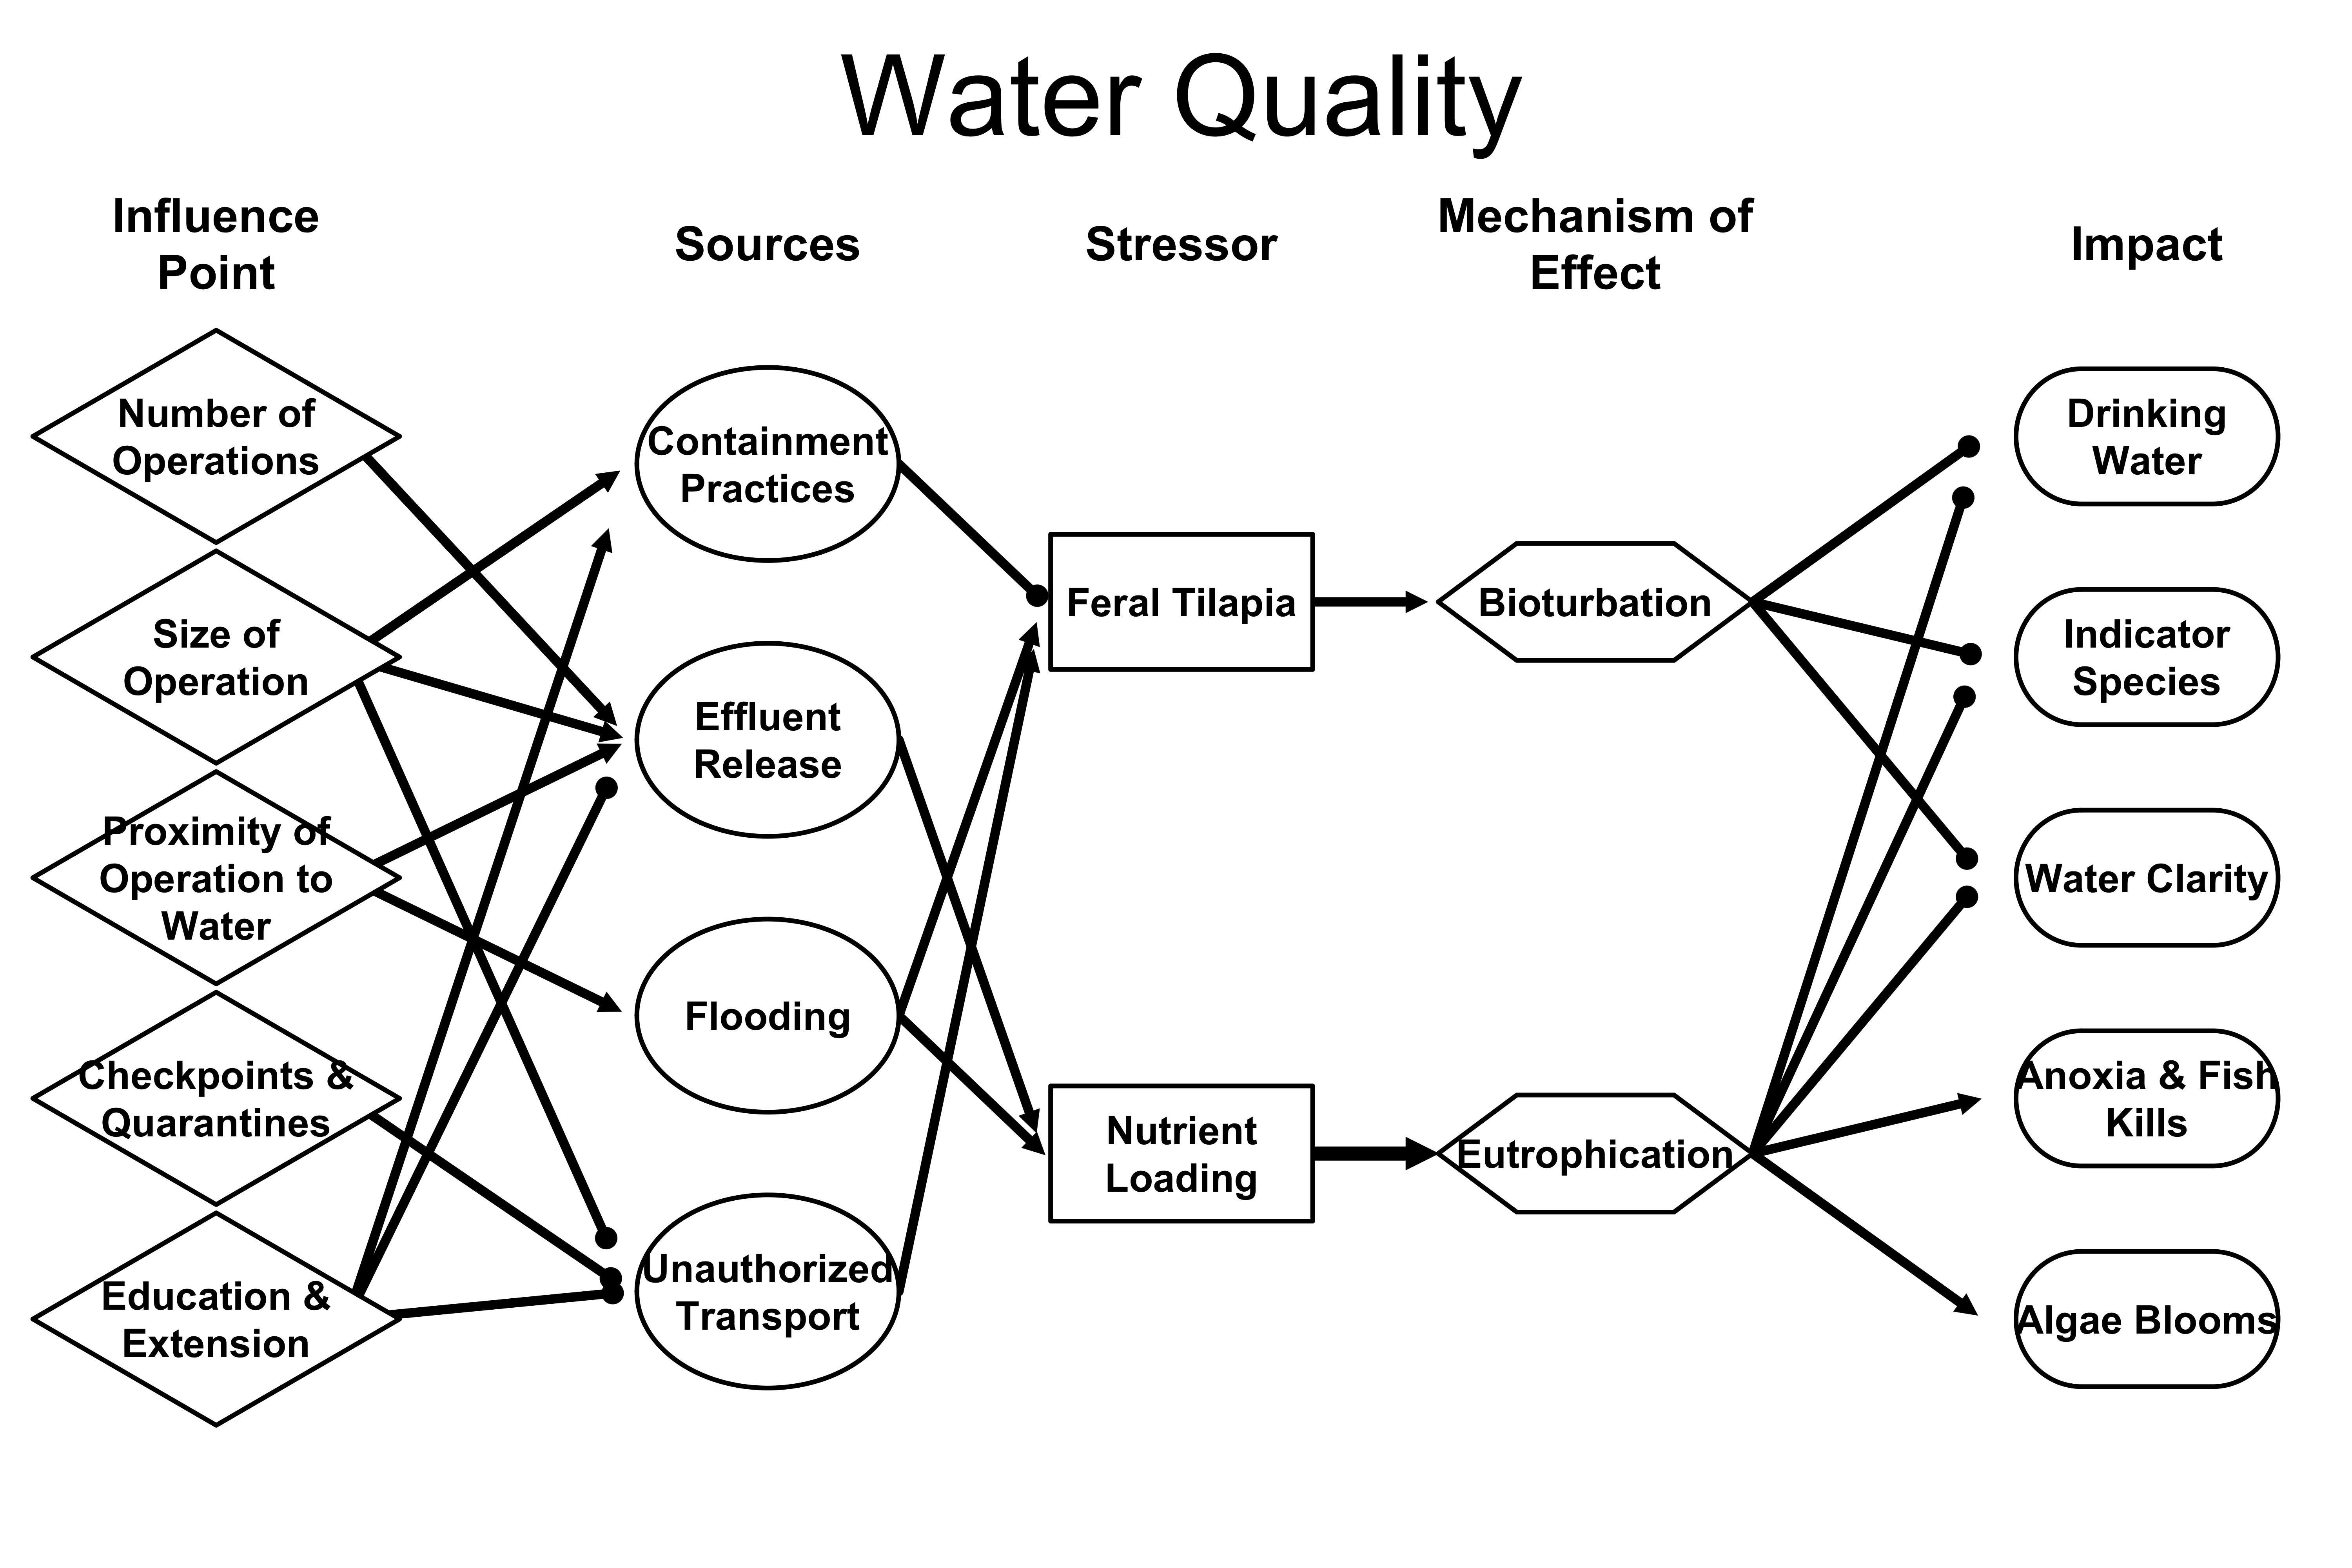 conceptual framework of water pollution /water resources management / river basins / agricultural development /  institutions / organizations  using the river basin as the unit of analysis, this  conceptual framework seeks to explore the utility of  sea salinity water  pollution.